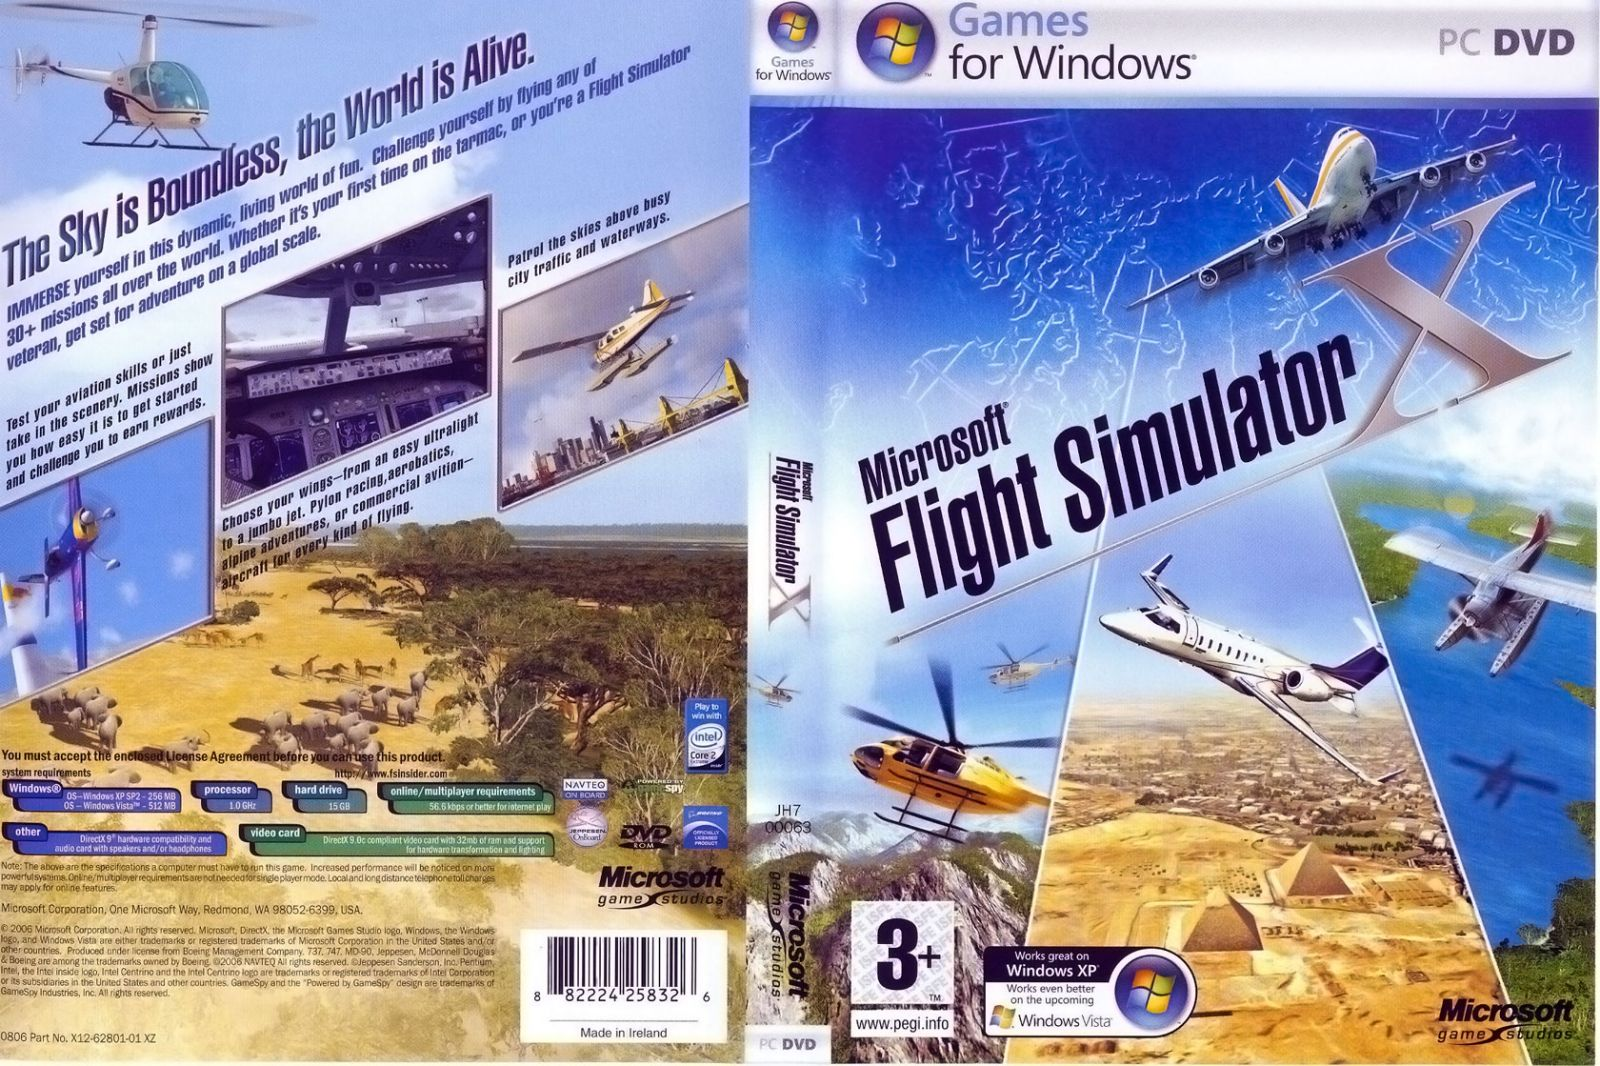 https://flyawaysimulation.com/media/images1/images/microsoft-flight-simulator-x-box-artwork.jpg